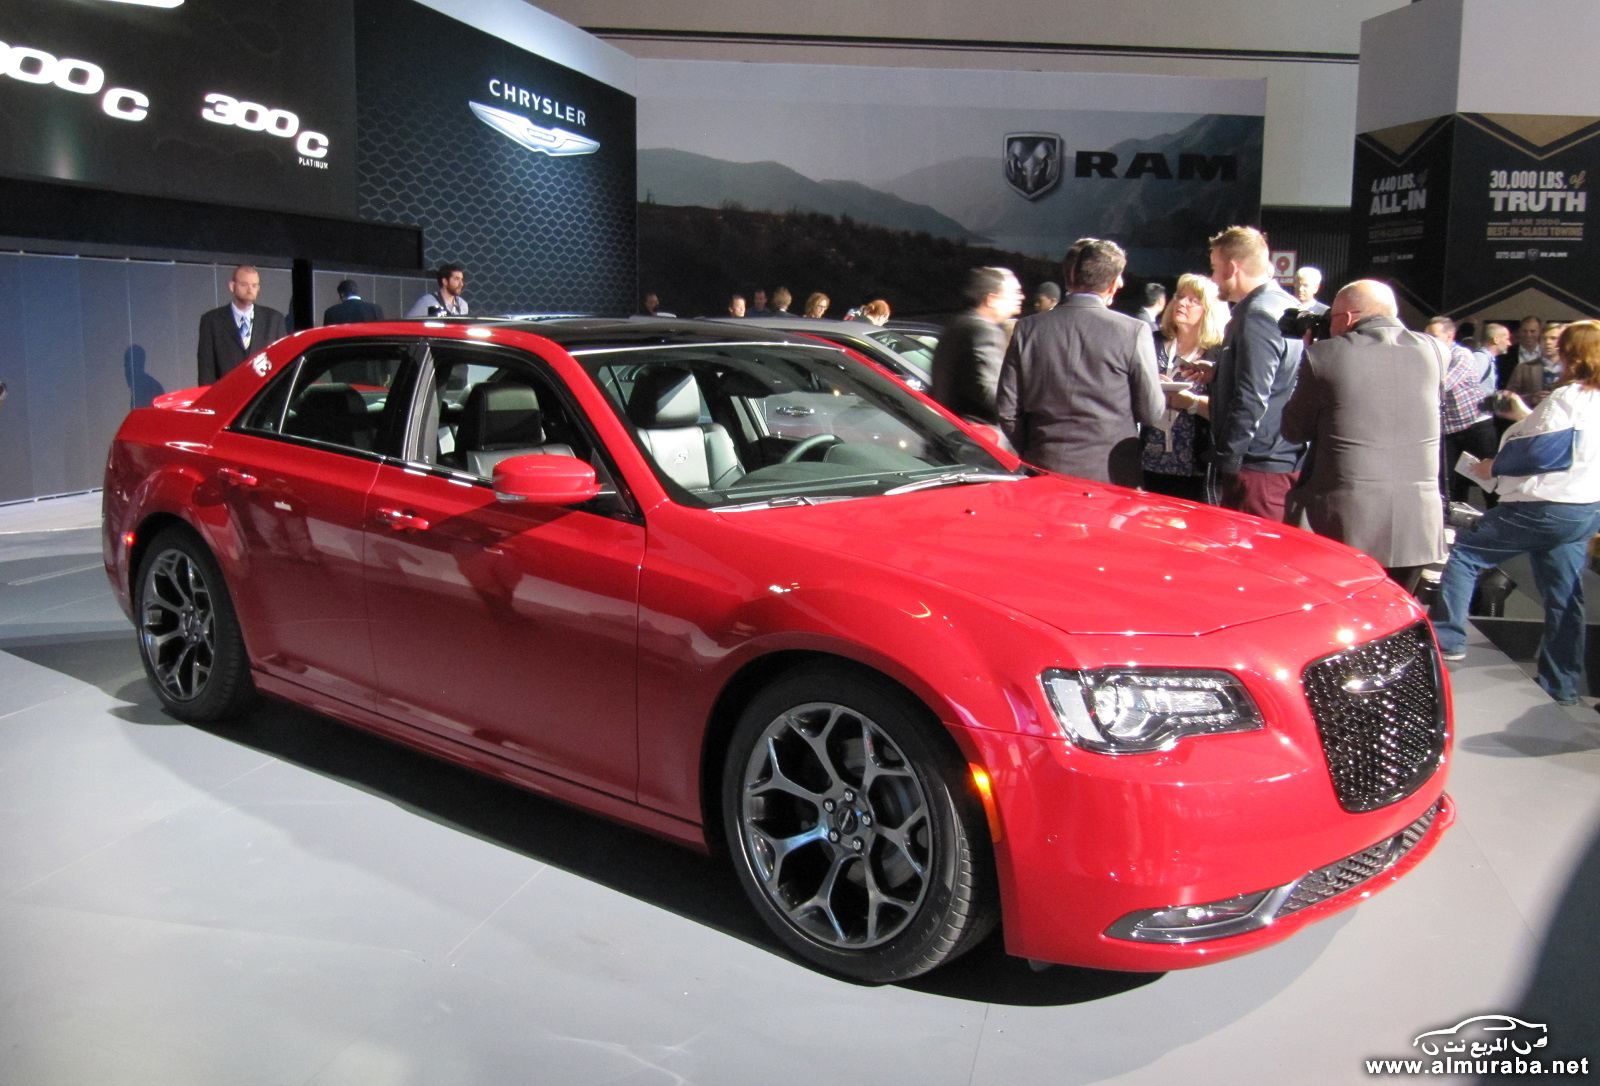 2015-chrysler-300-unveiled-at-2014-los-angeles-auto-show_100490802_h